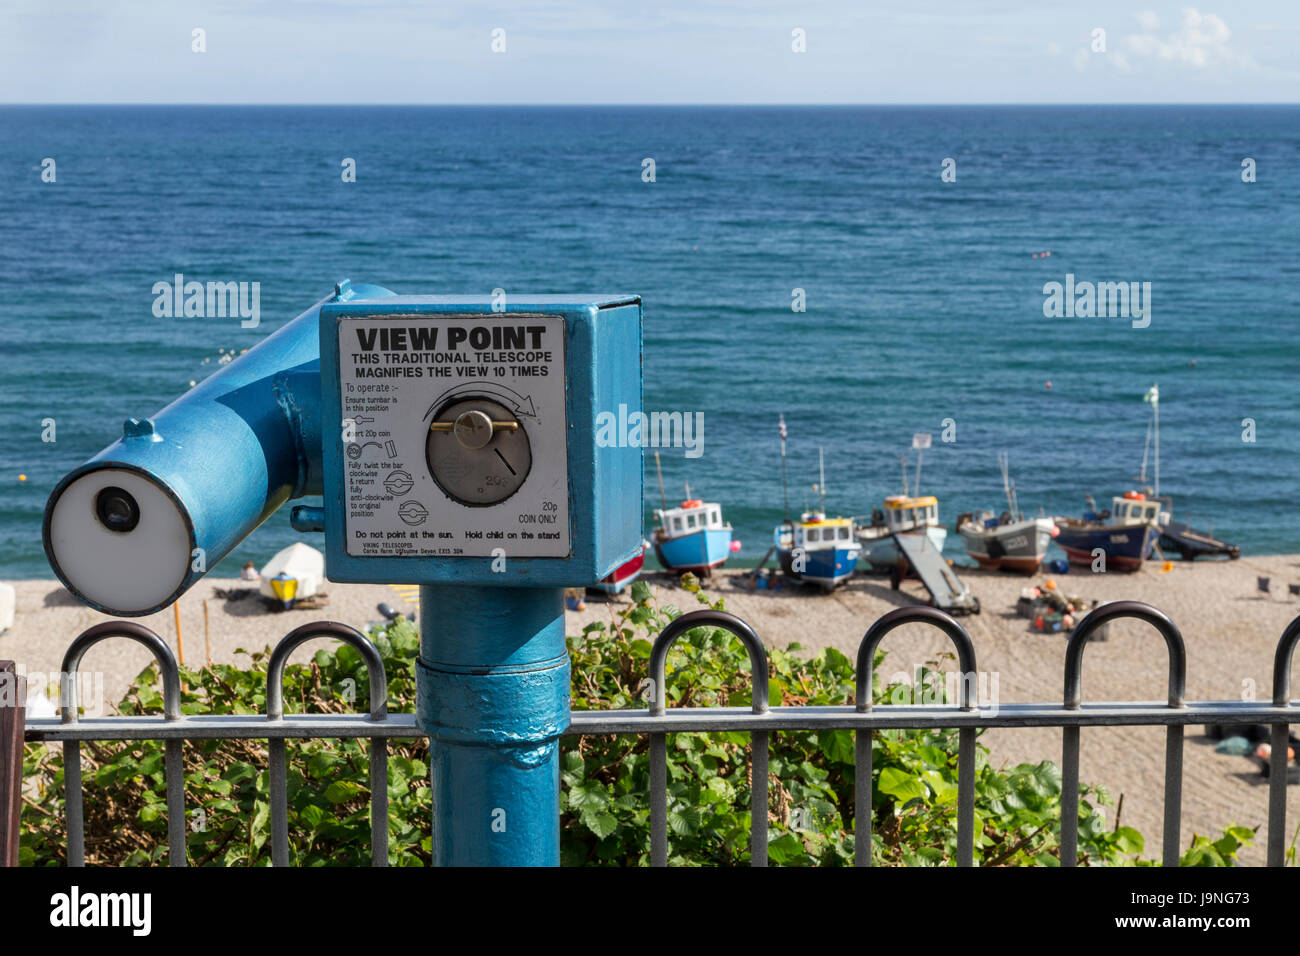 A viewpoint telescope ovelooking the bay at Beer, Devon, a pretty fishing village on the jurassic coast. - Stock Image